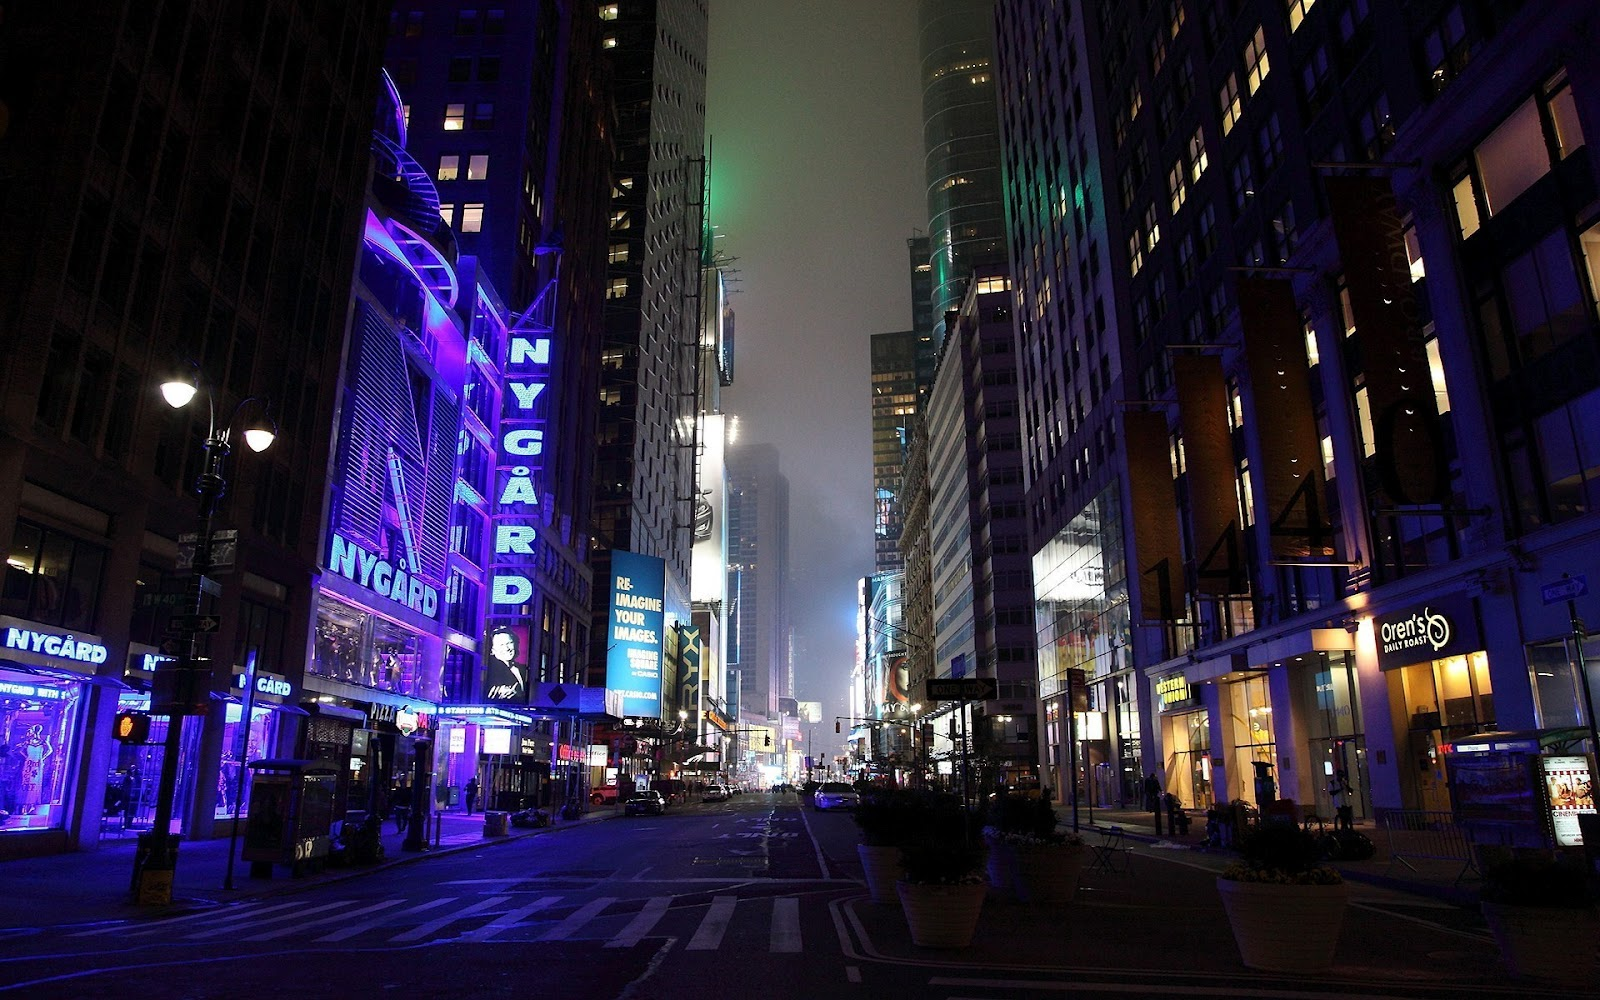 http://4.bp.blogspot.com/-ygt5xnluVBM/T58qPBdGeuI/AAAAAAAAbV8/M4llfWNj5Wk/s1600/New-York-NYC-USA-Wallpapers_06.jpg